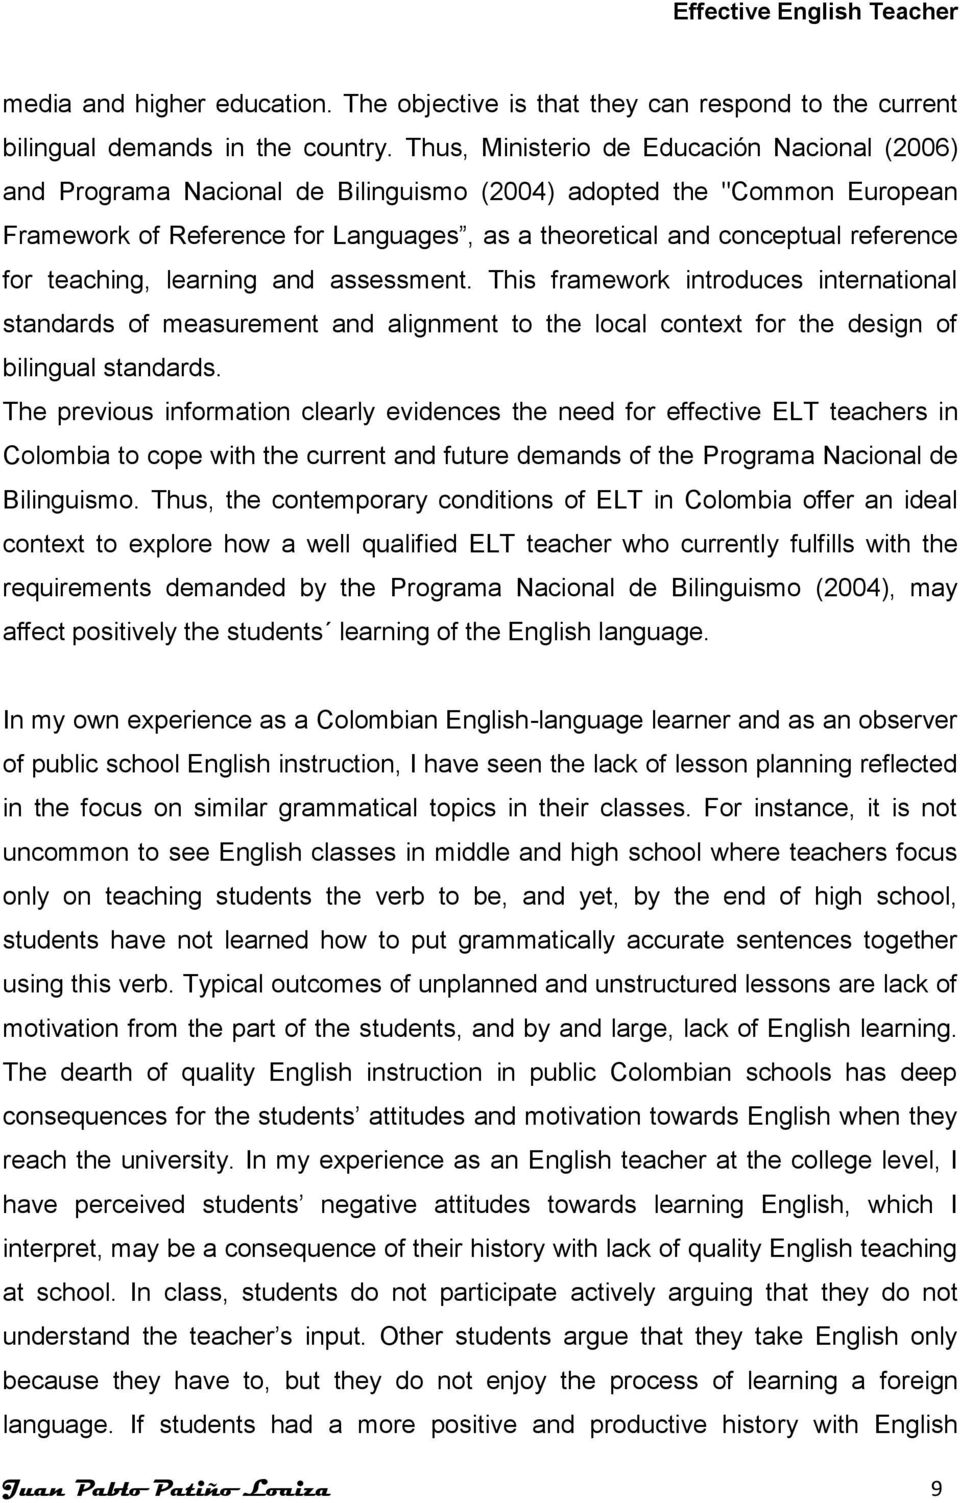 for teaching, learning and assessment. This framework introduces international standards of measurement and alignment to the local context for the design of bilingual standards.